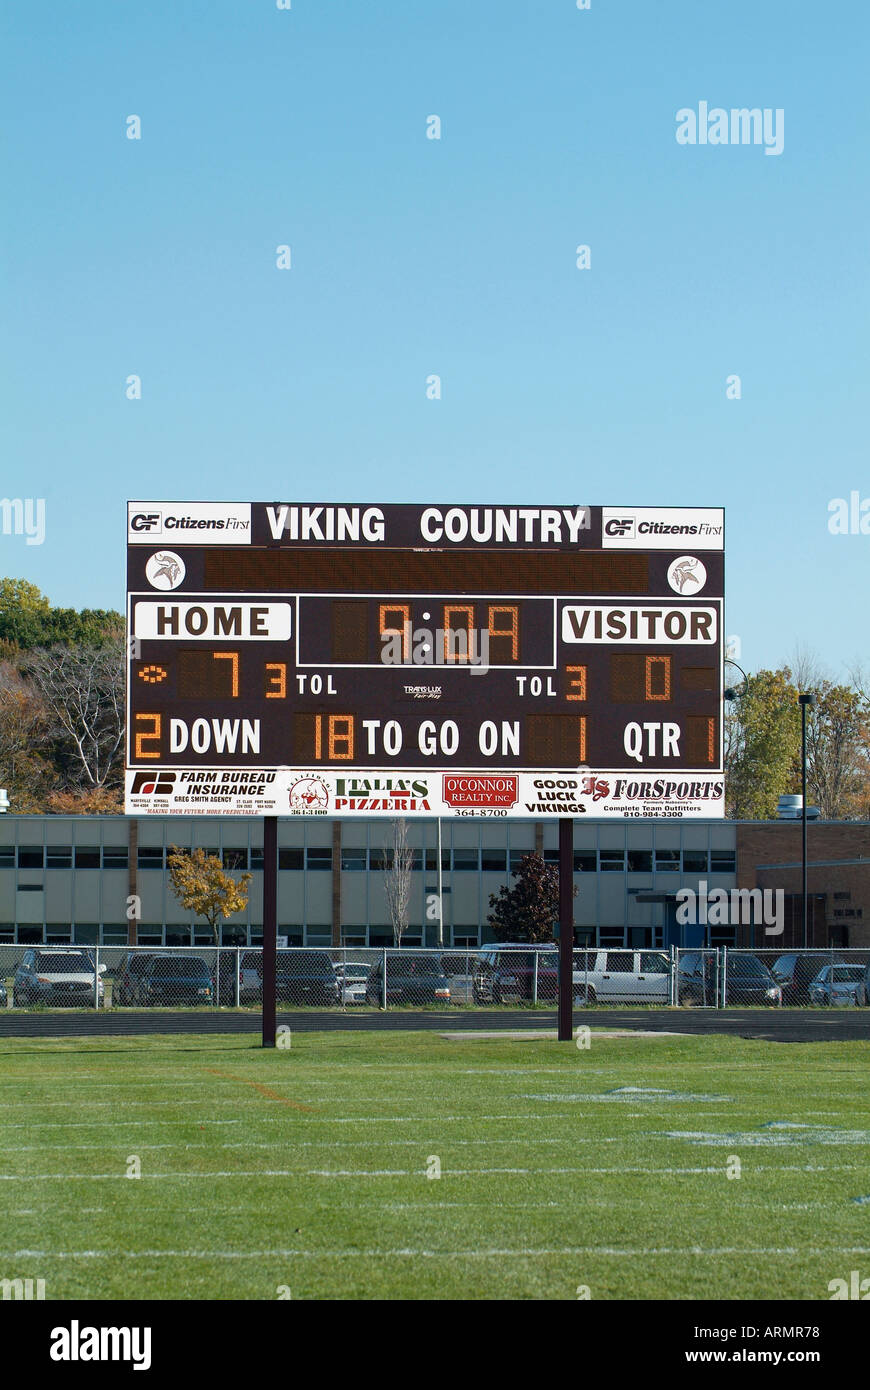 Football game with scoreboard indication the score and time left in a period - Stock Image